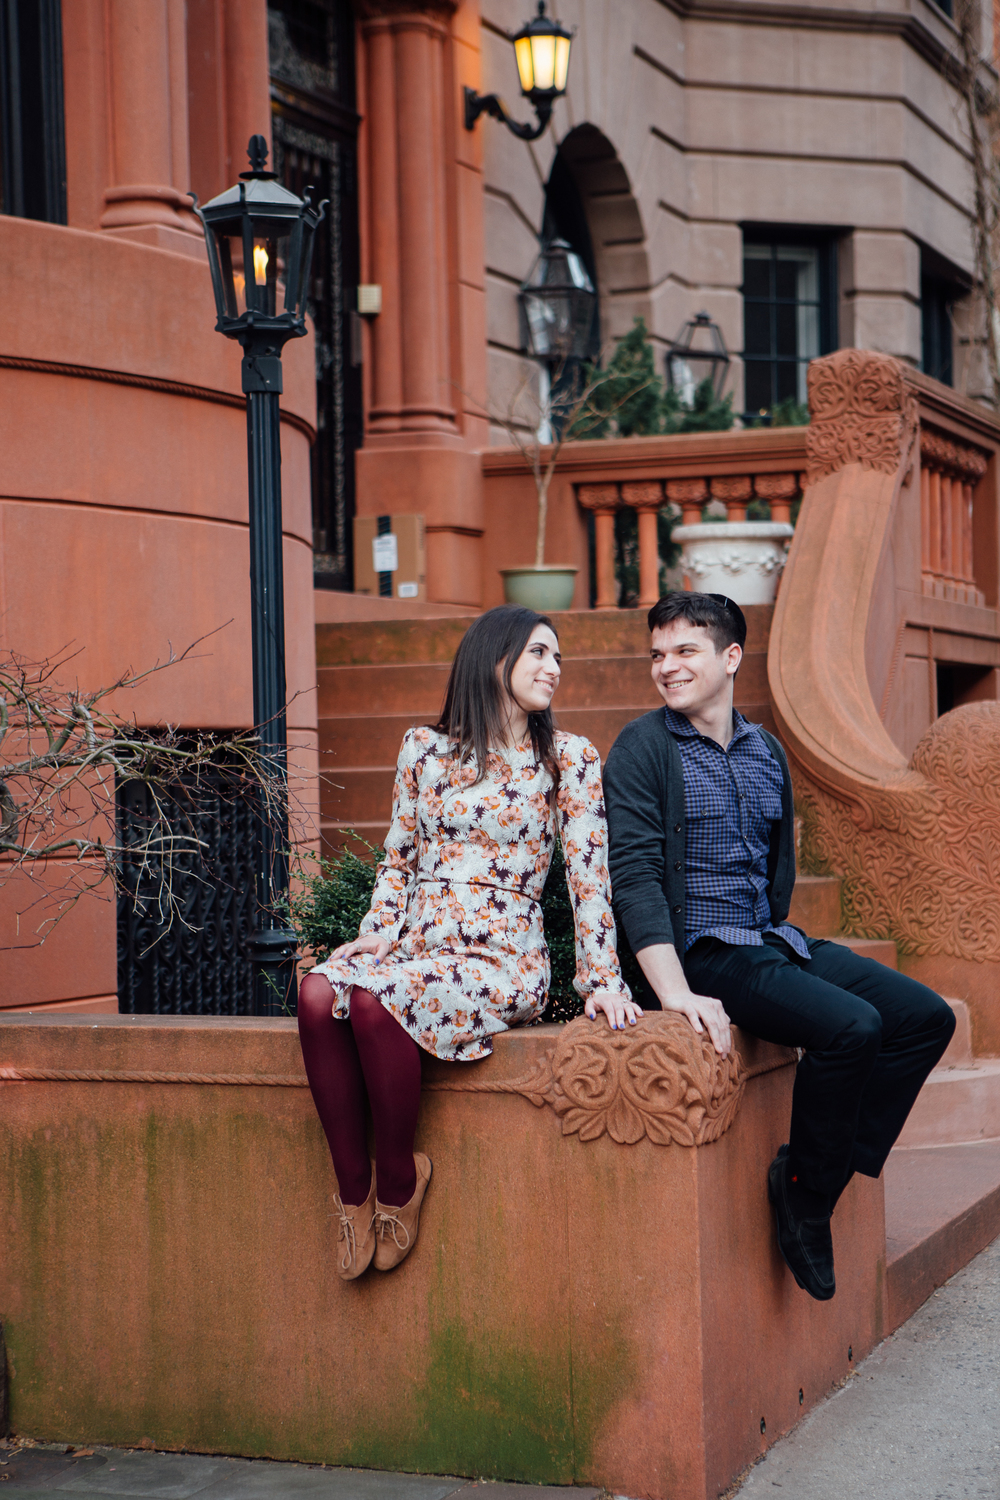 Avi & Yehudis - Engagement Session  - Eliau Piha studio photography, new york, events, people-0069.jpg